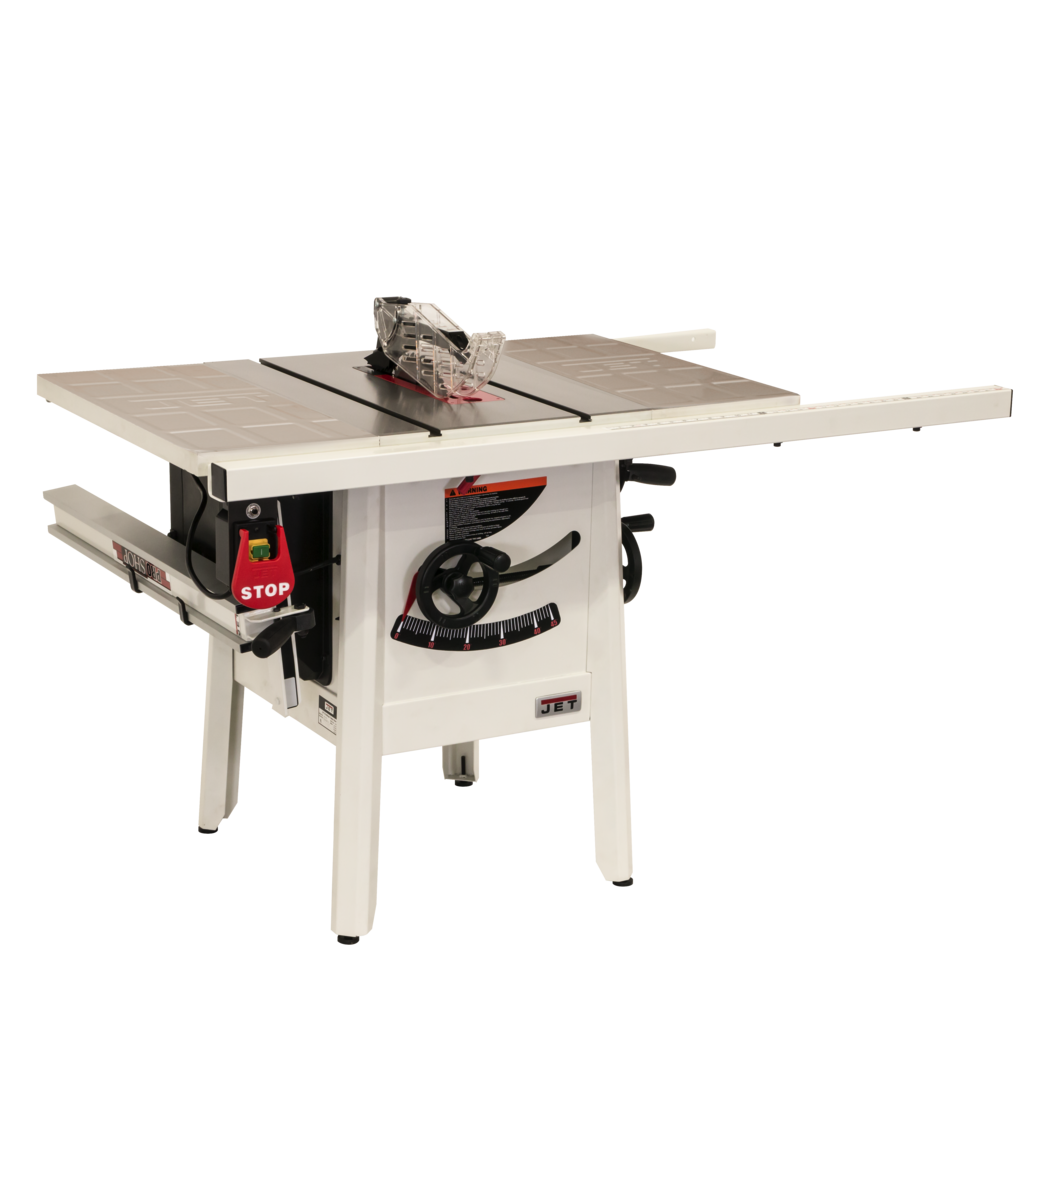 "The JPS-10 1.75 HP 230V 30"" Proshop Tablesaw with Steel wings"